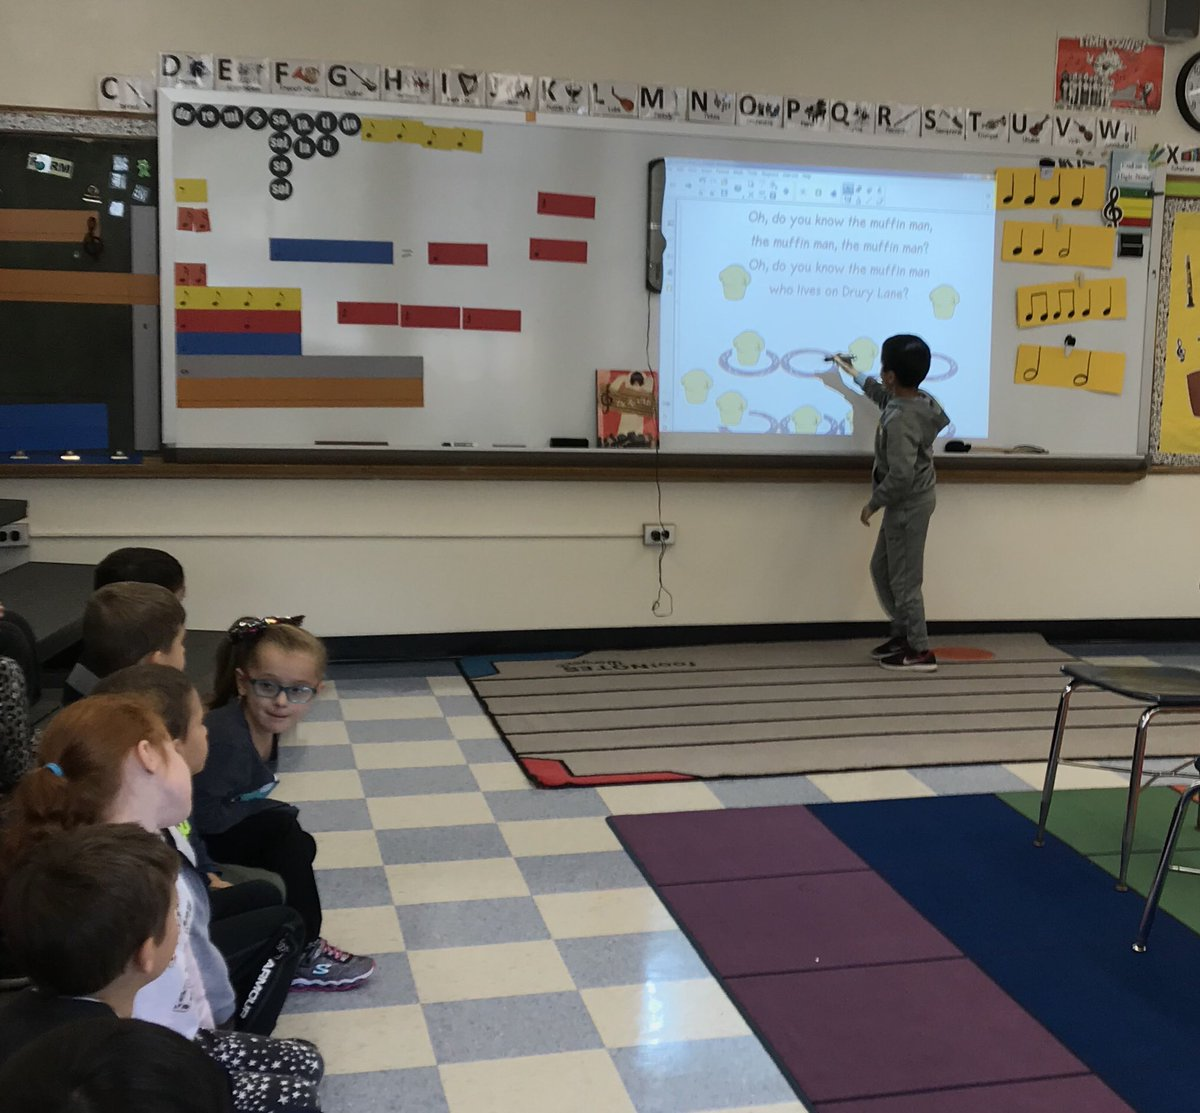 Do you know the muffin man?  1st grade composes and leads the class in performing new rhythms. #musiced #elementarymusic #musicclass #magicpen @NorthSideEW<br>http://pic.twitter.com/tsrUz8m1Ps